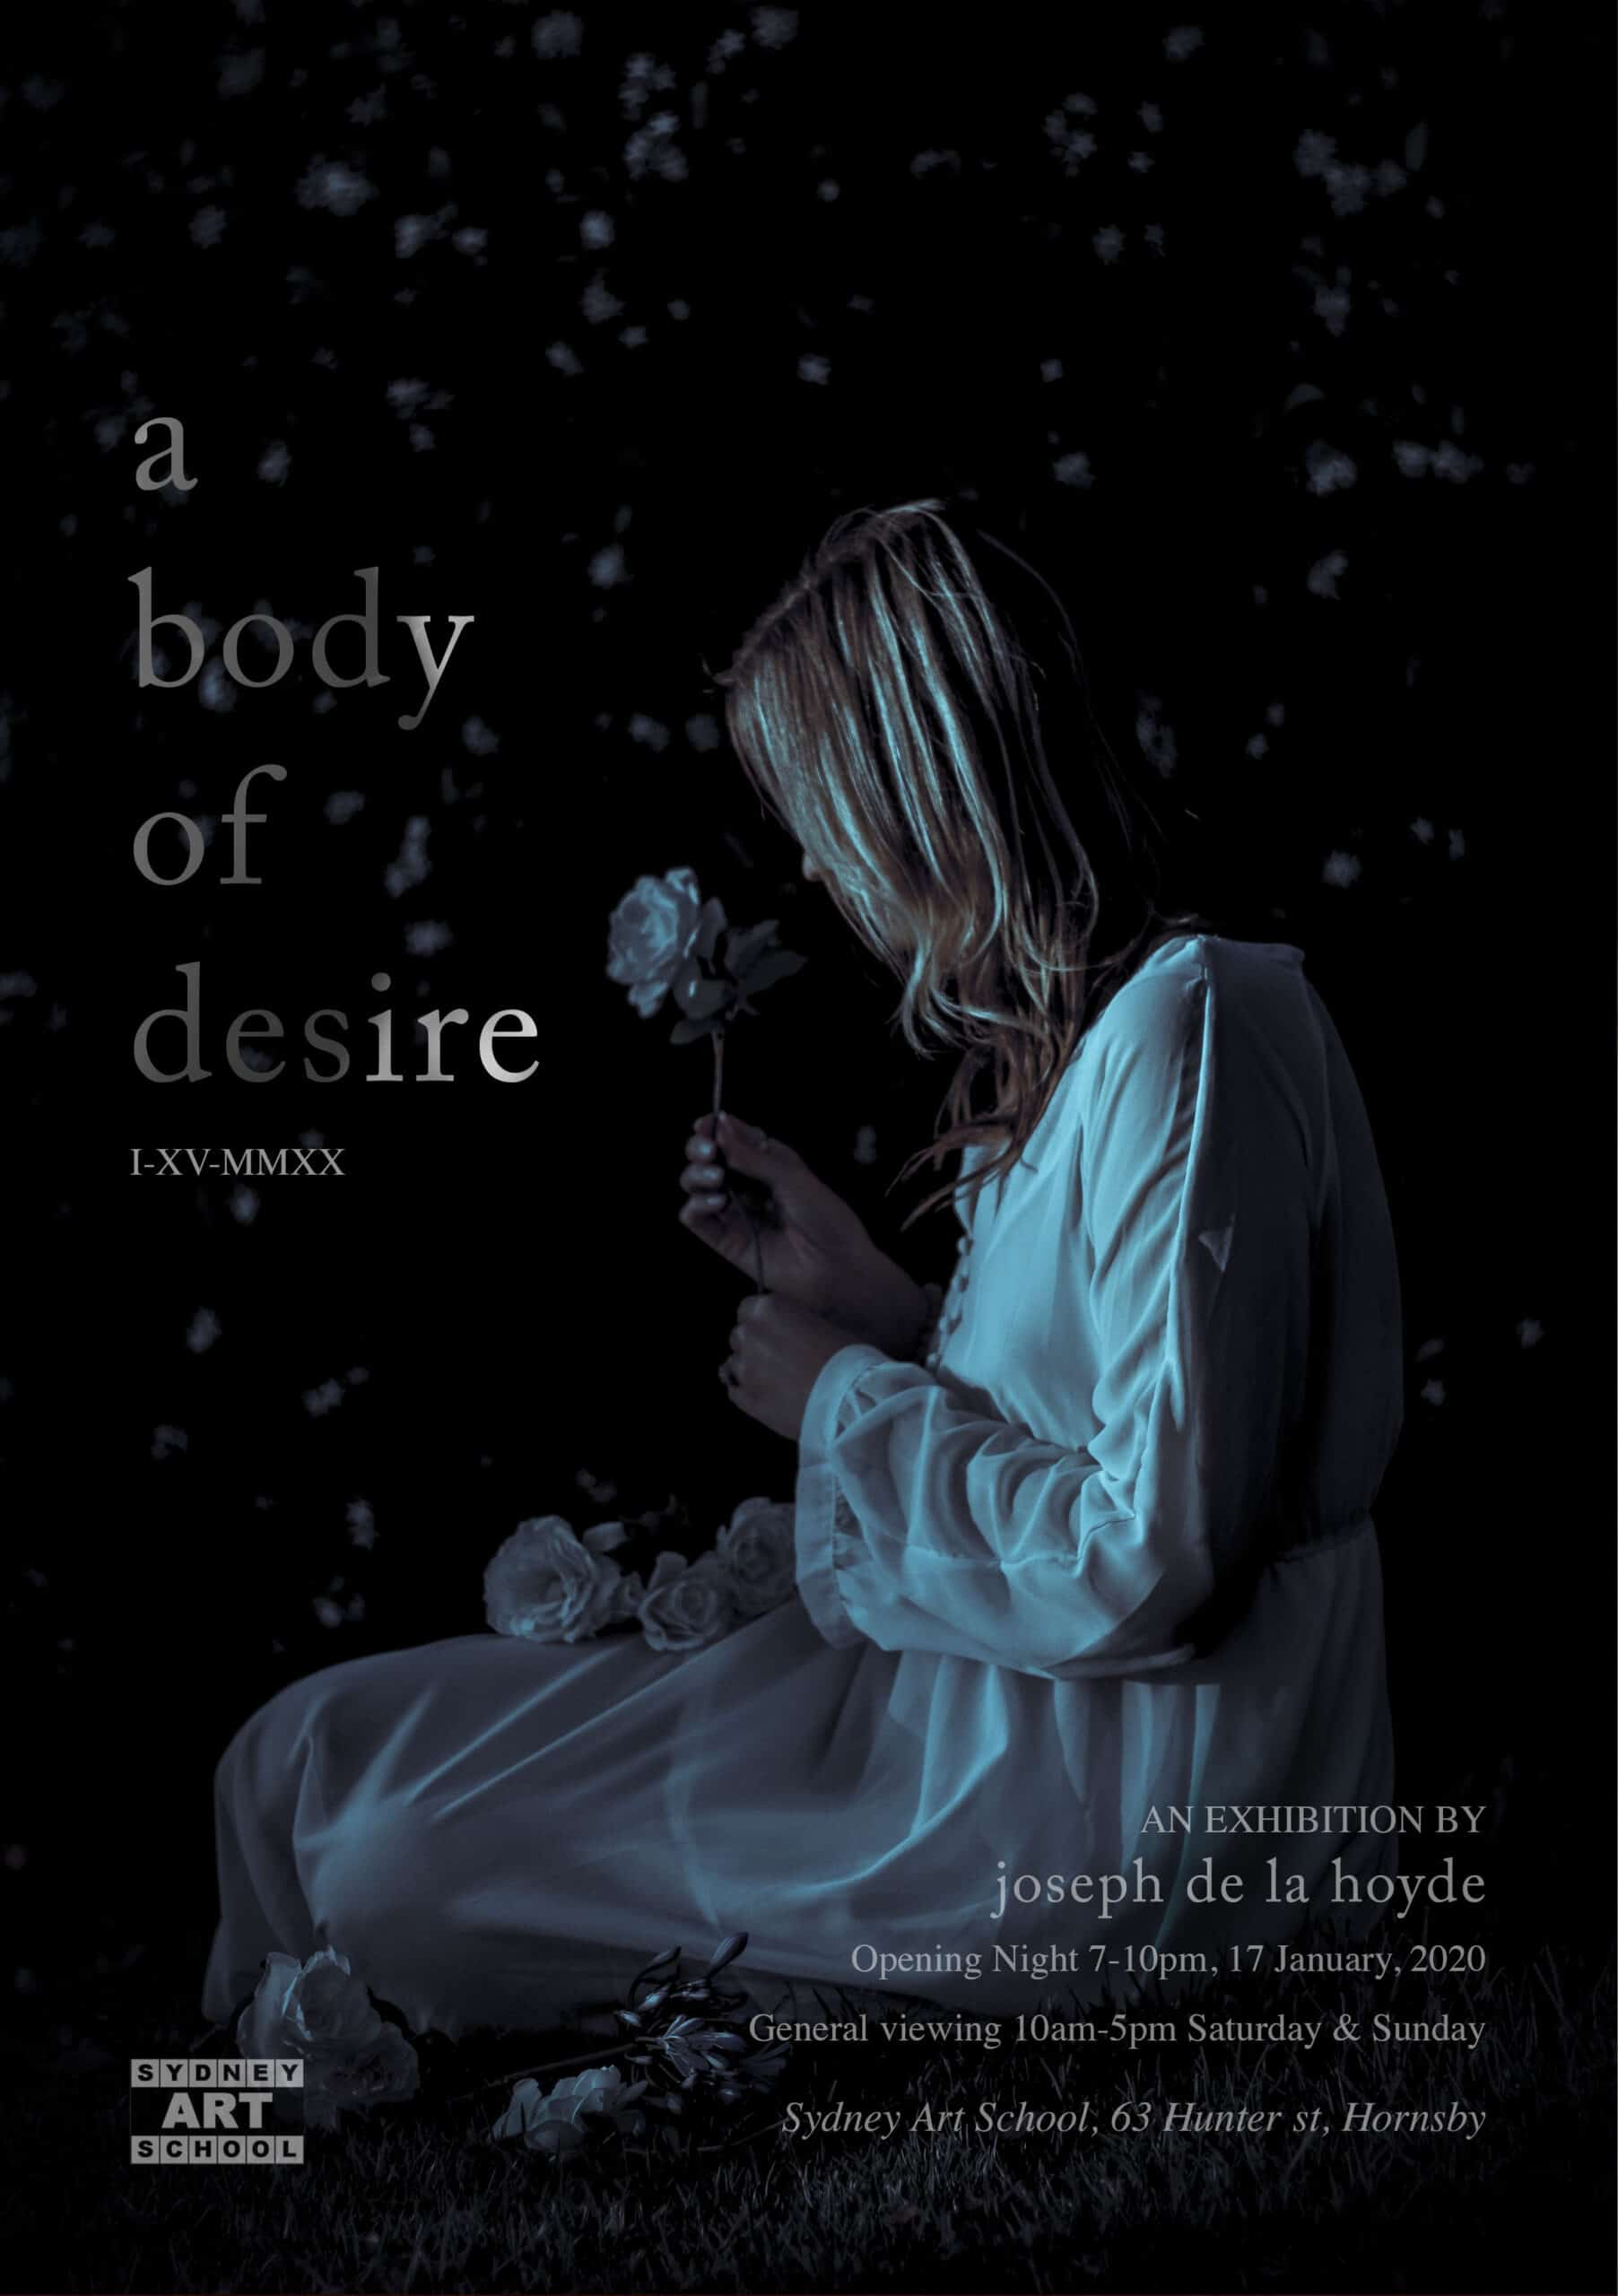 Joseph de la Hoyde, A Body of Desire Exhibition at Sydney Art School